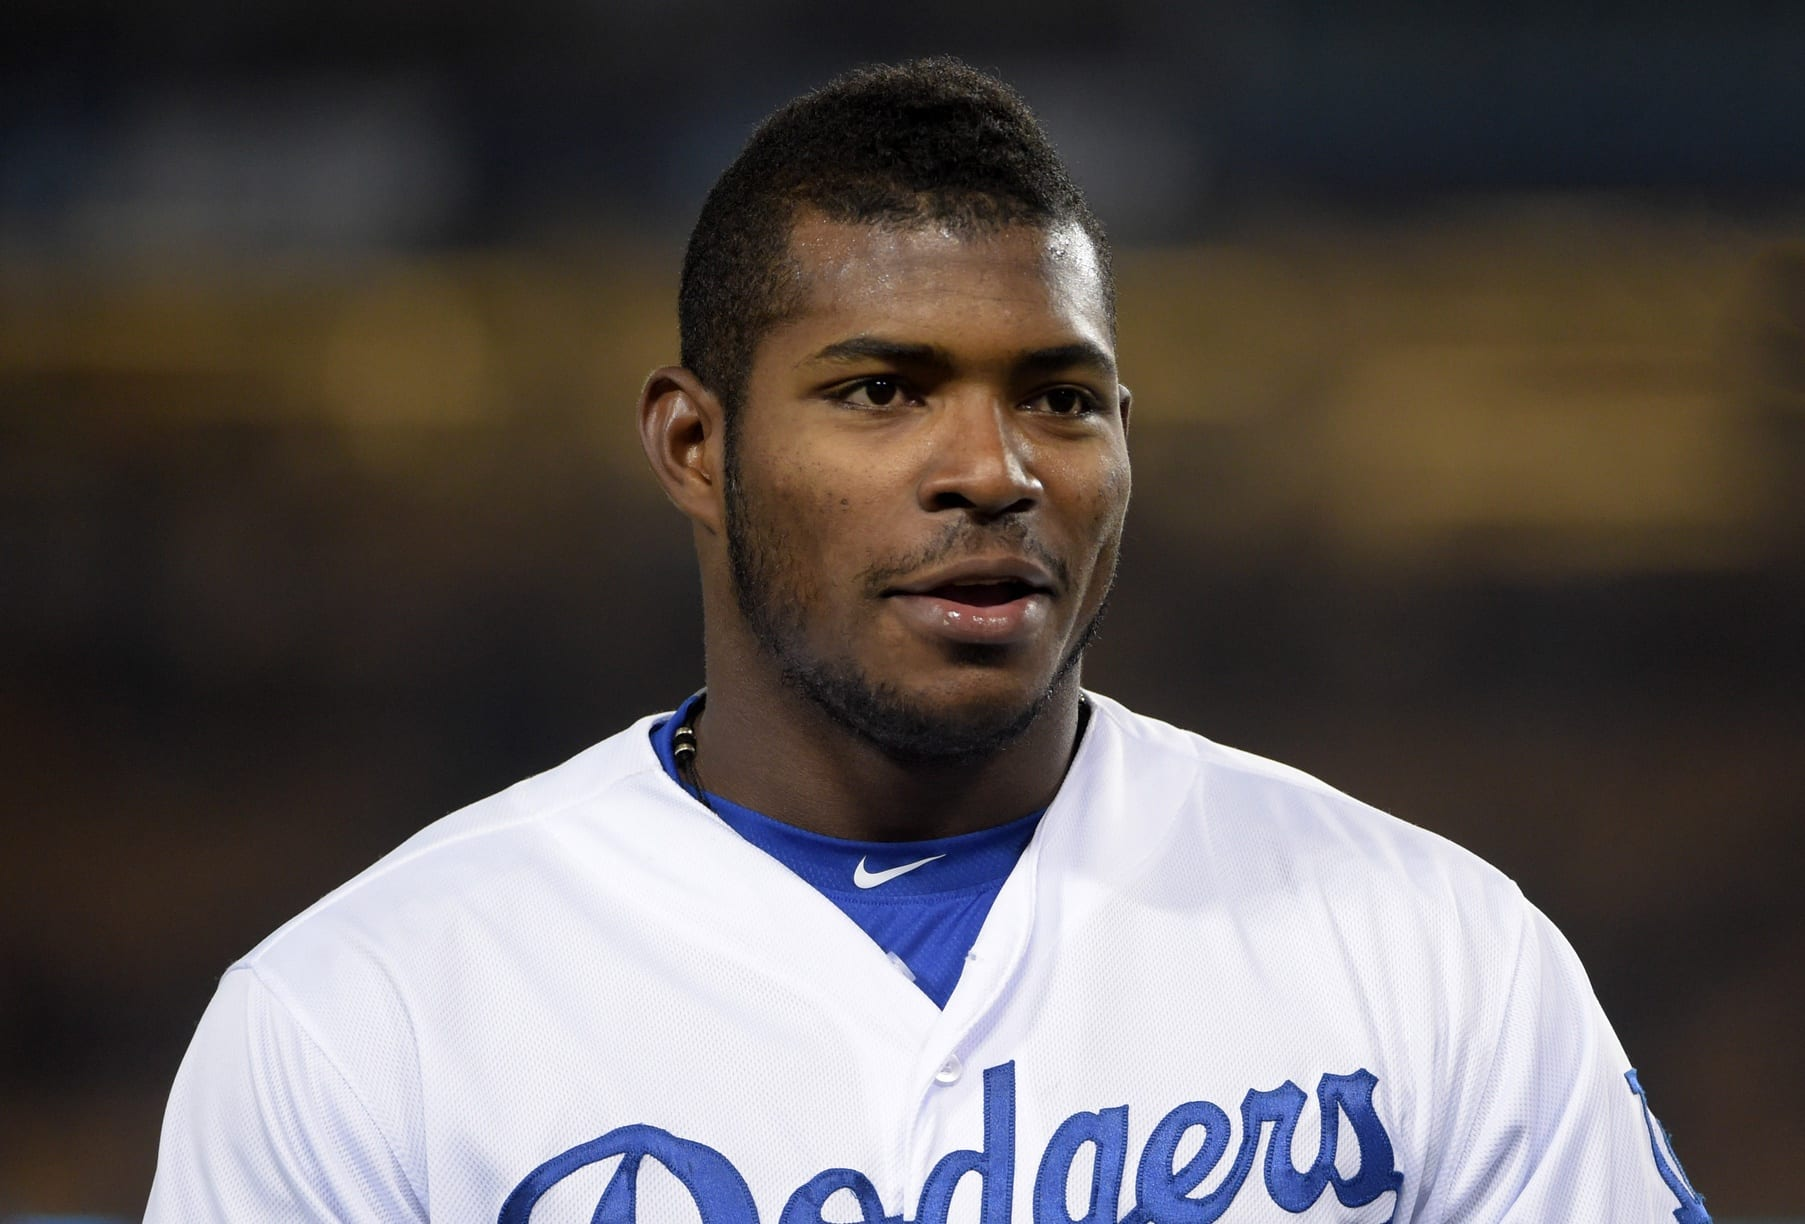 Dodgers News: Yasiel Puig Makes Miraculous Strides In Recovery